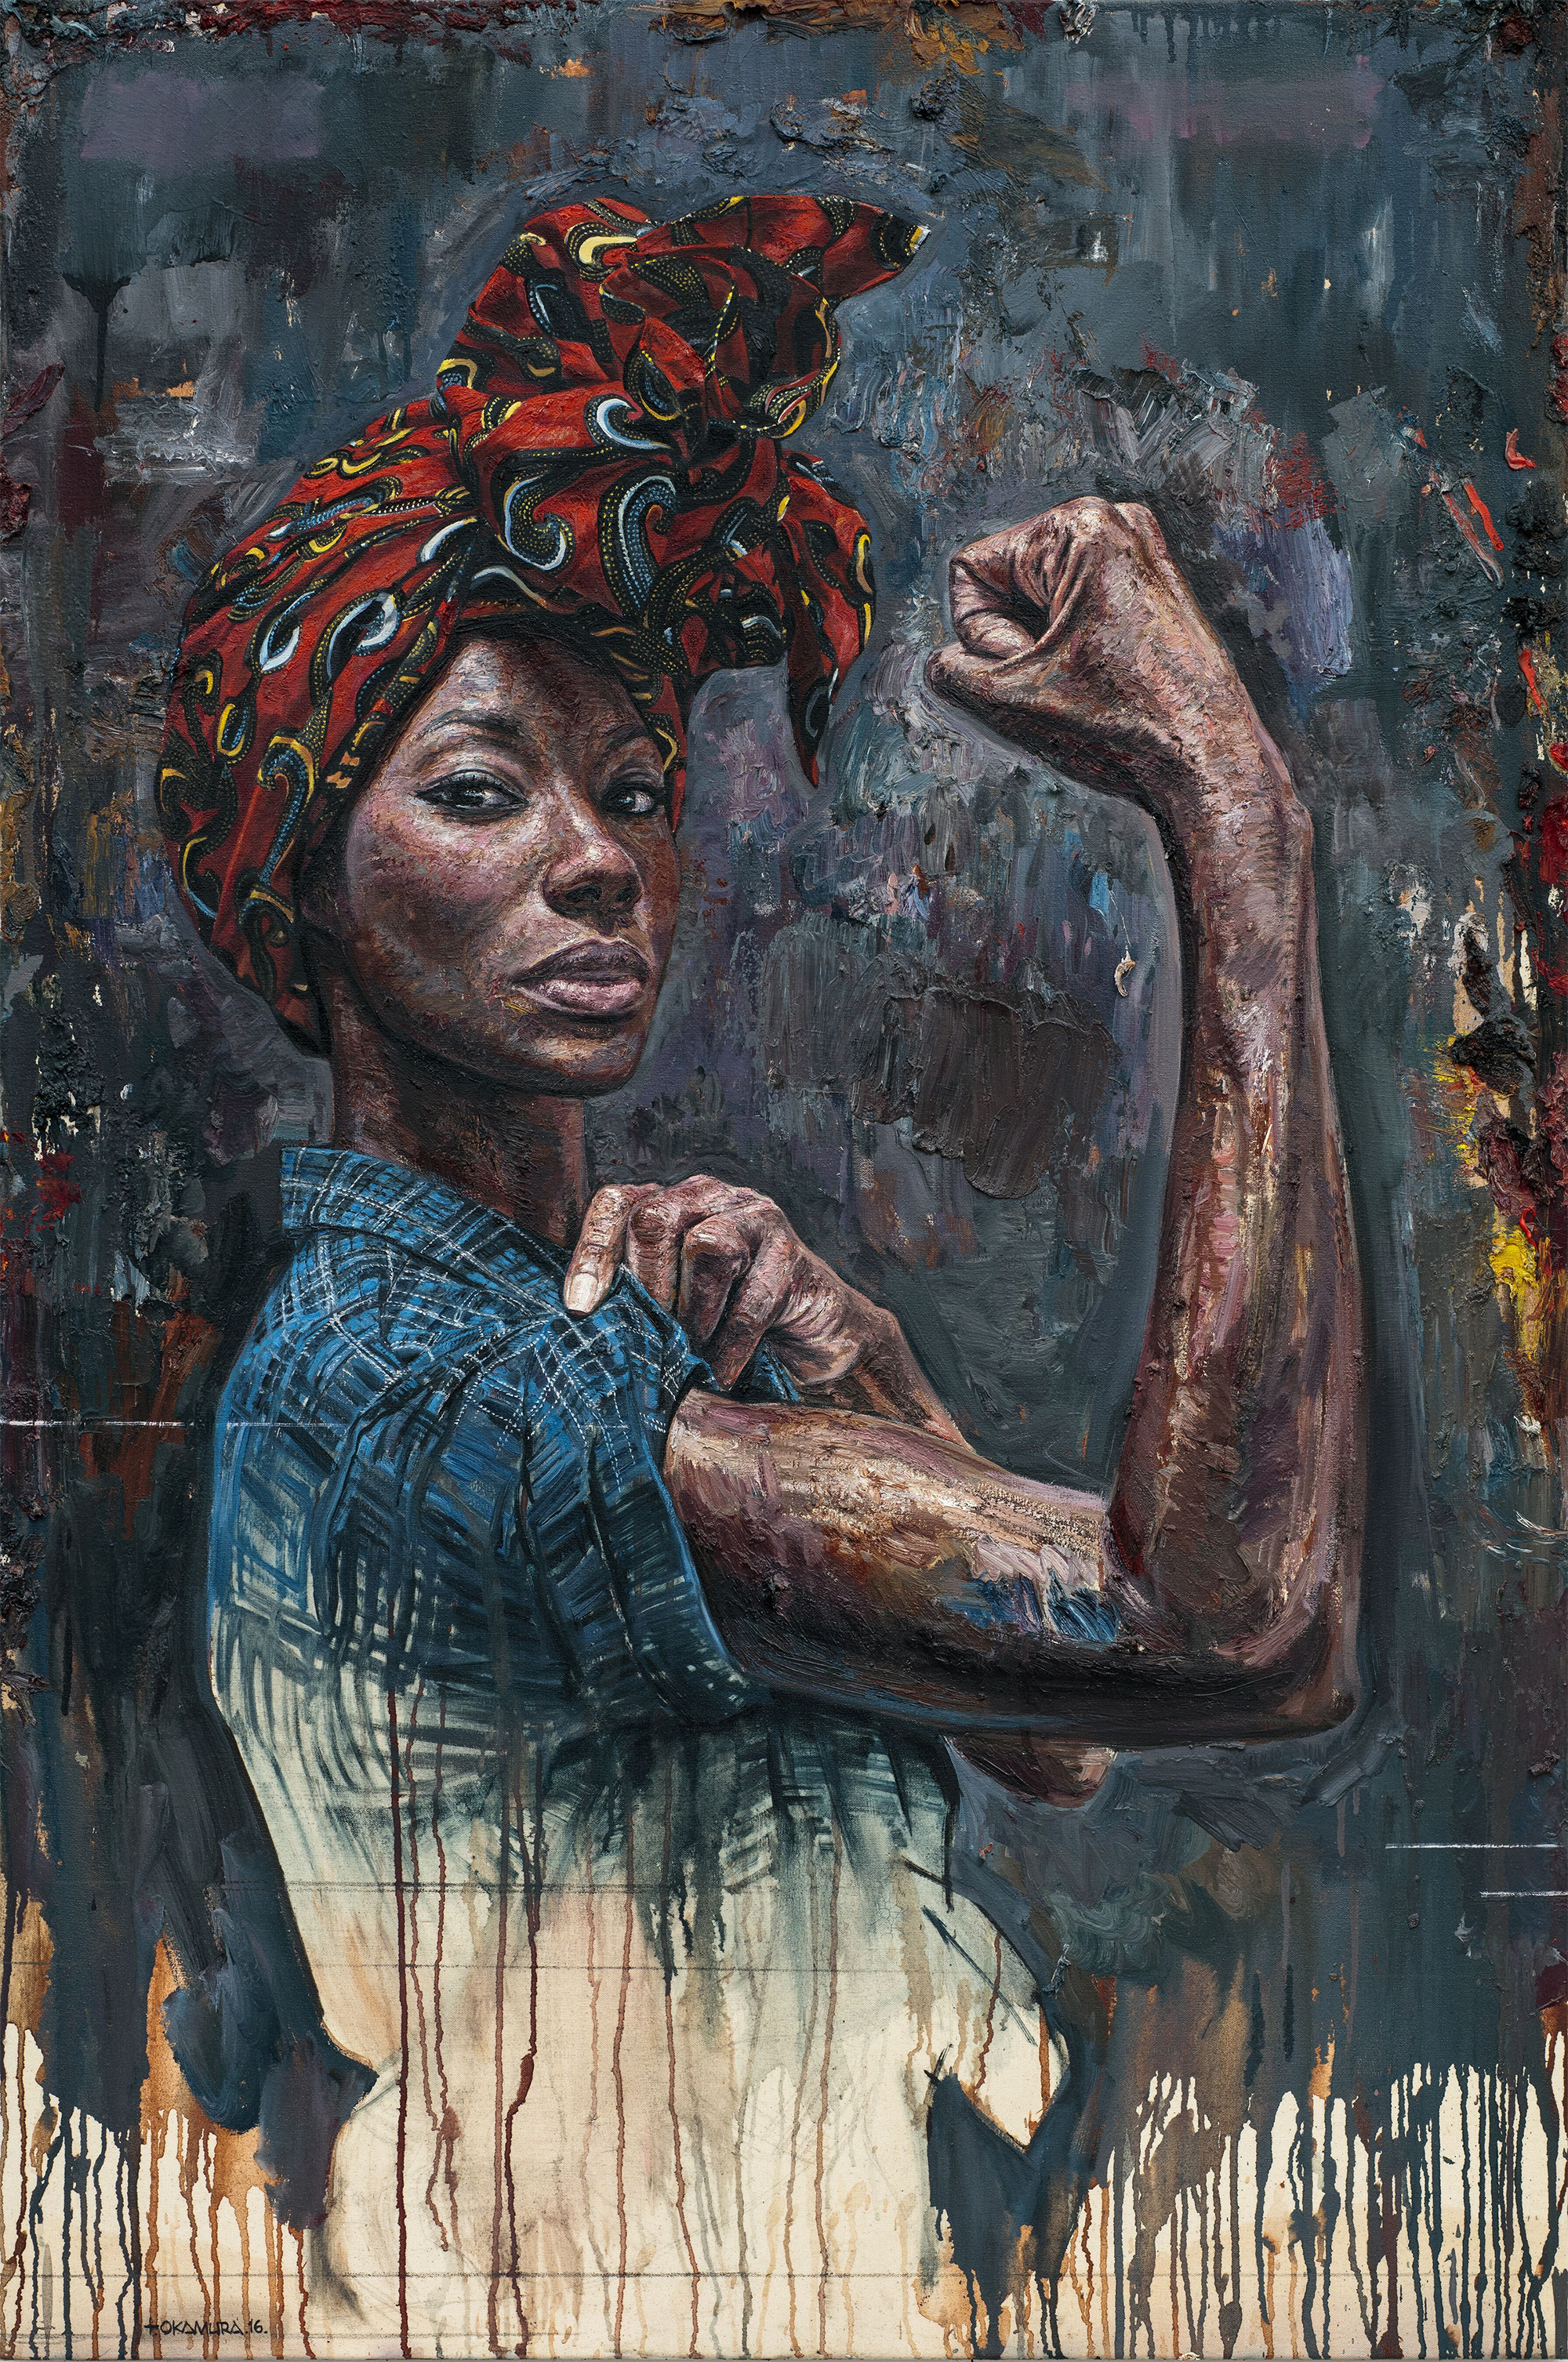 Striking Portraits Featuring Powerful Women of Color Painted by Artist Tim Okamura